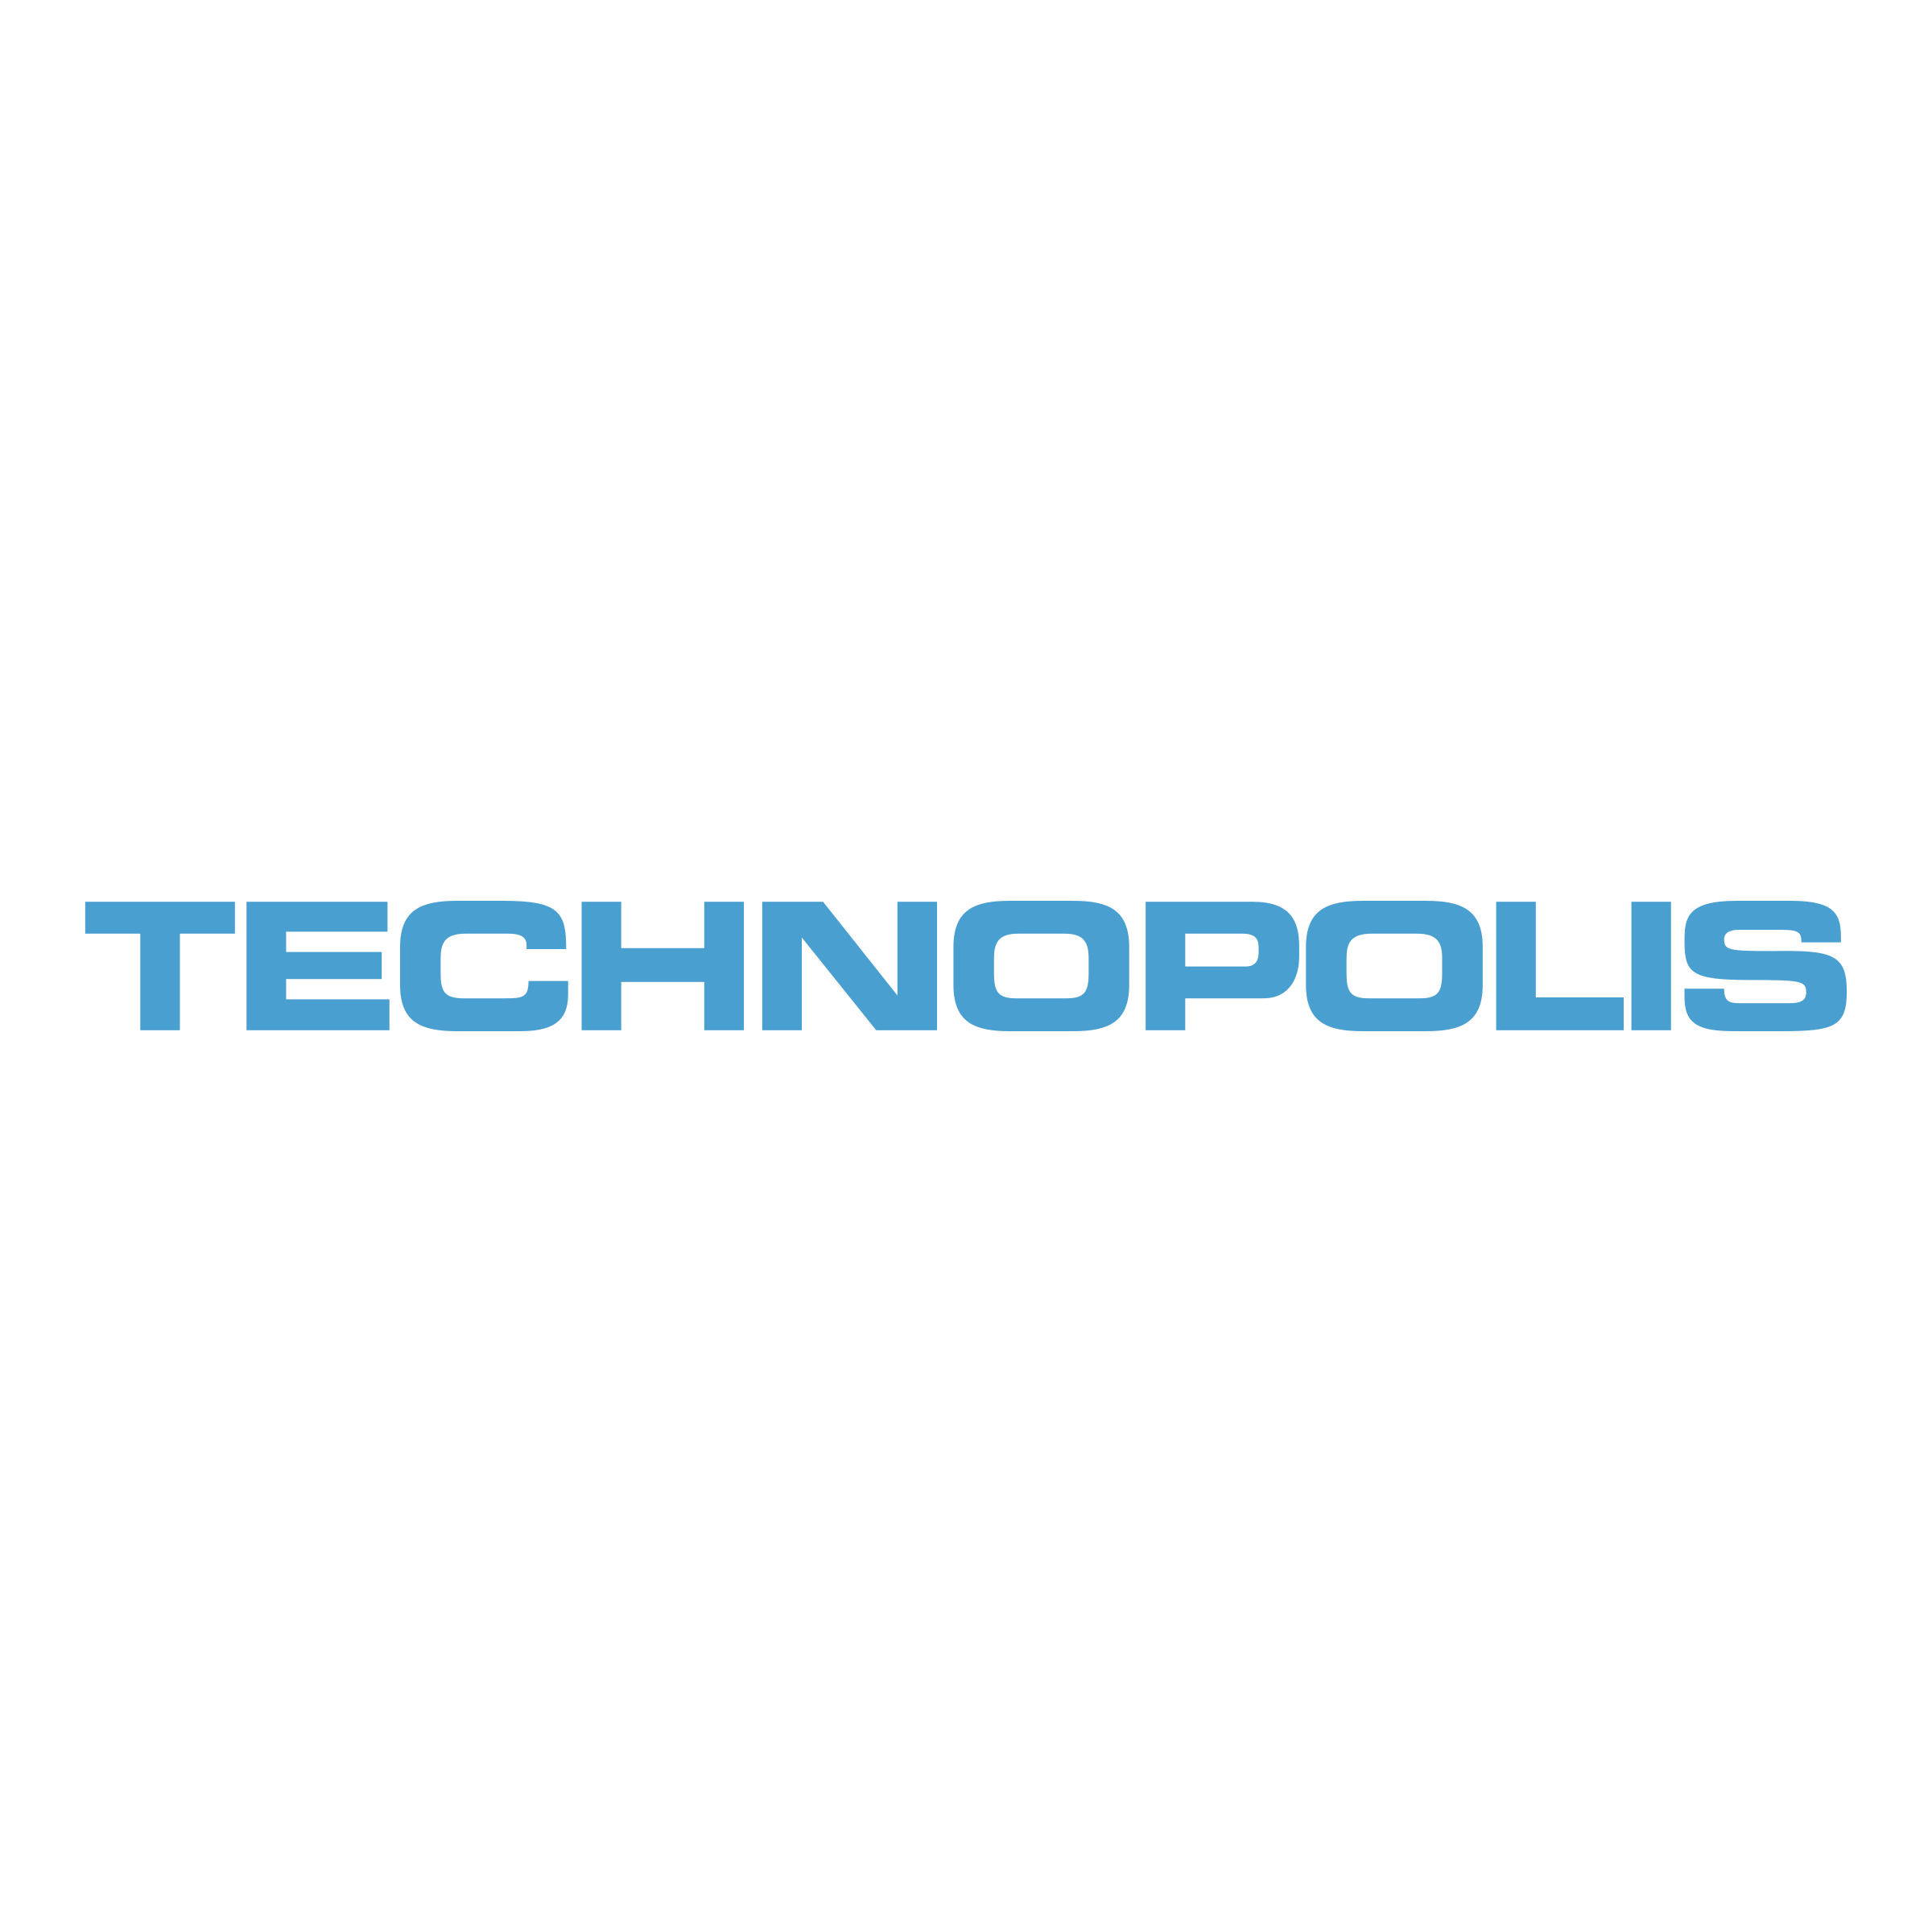 technopolis-logo-png-transparent.png